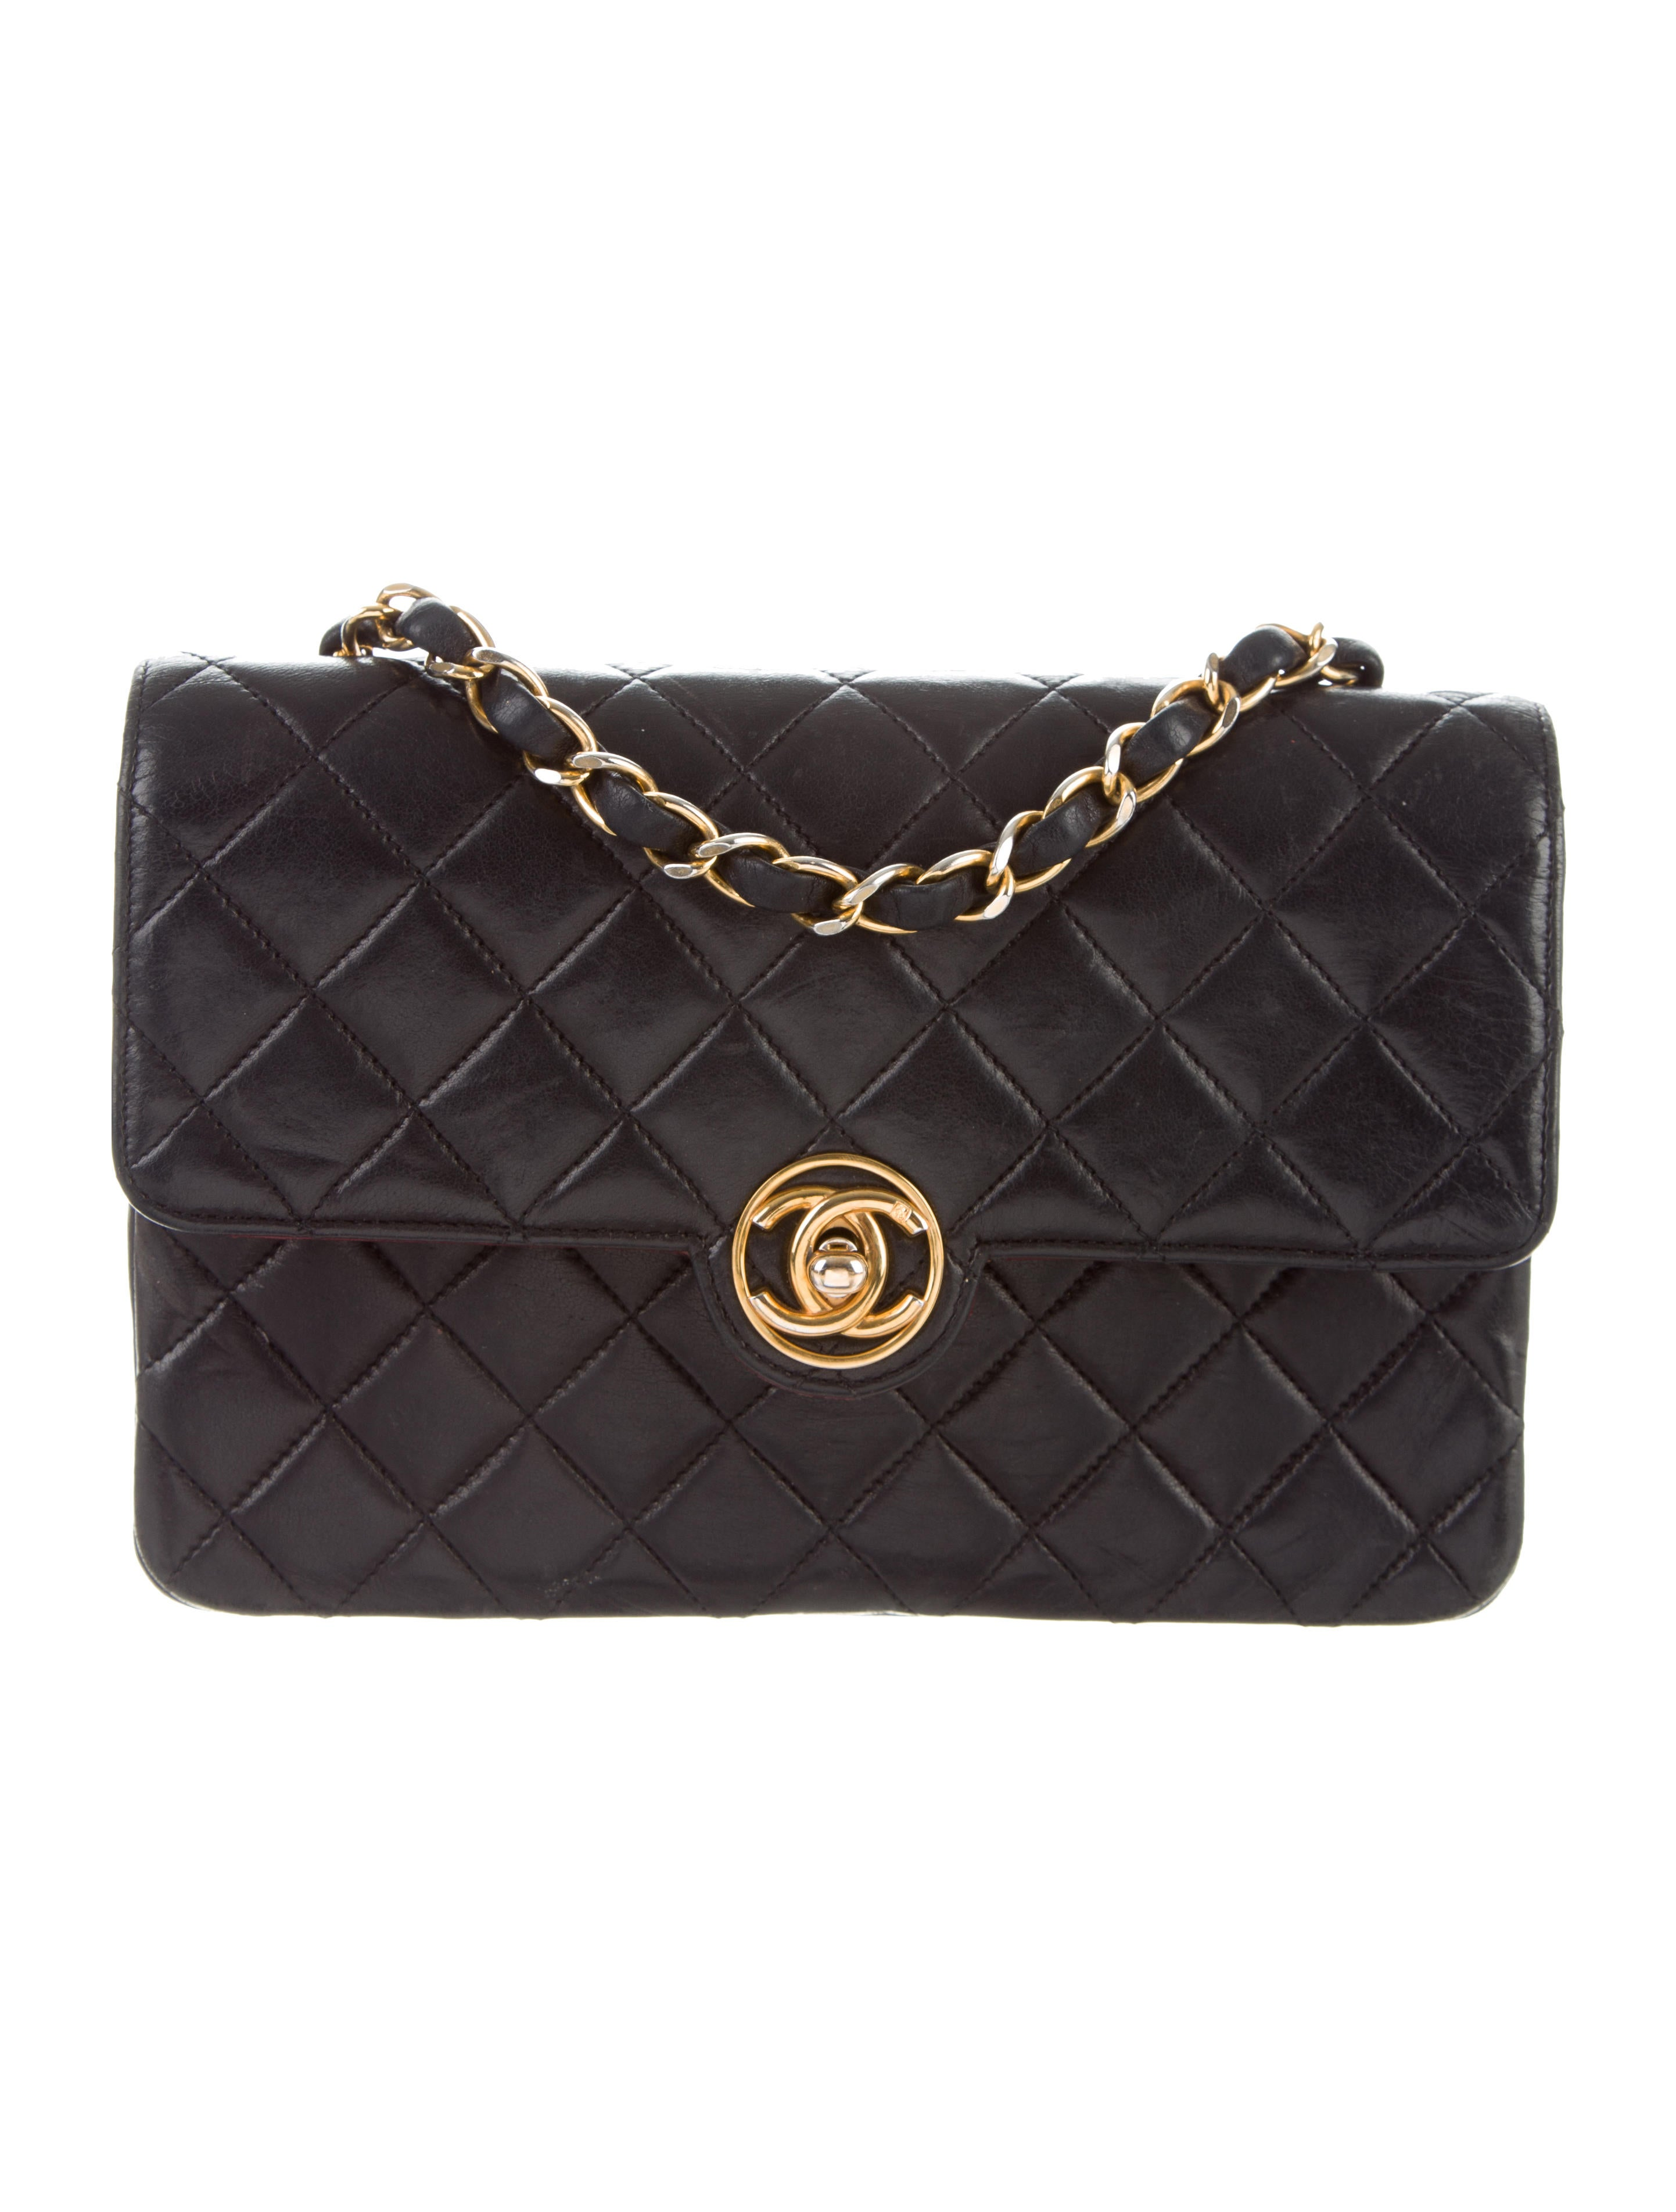 d36d8accac13 Chanel Vintage Quilted Small Flap Bag - Handbags - CHA301033 | The ...